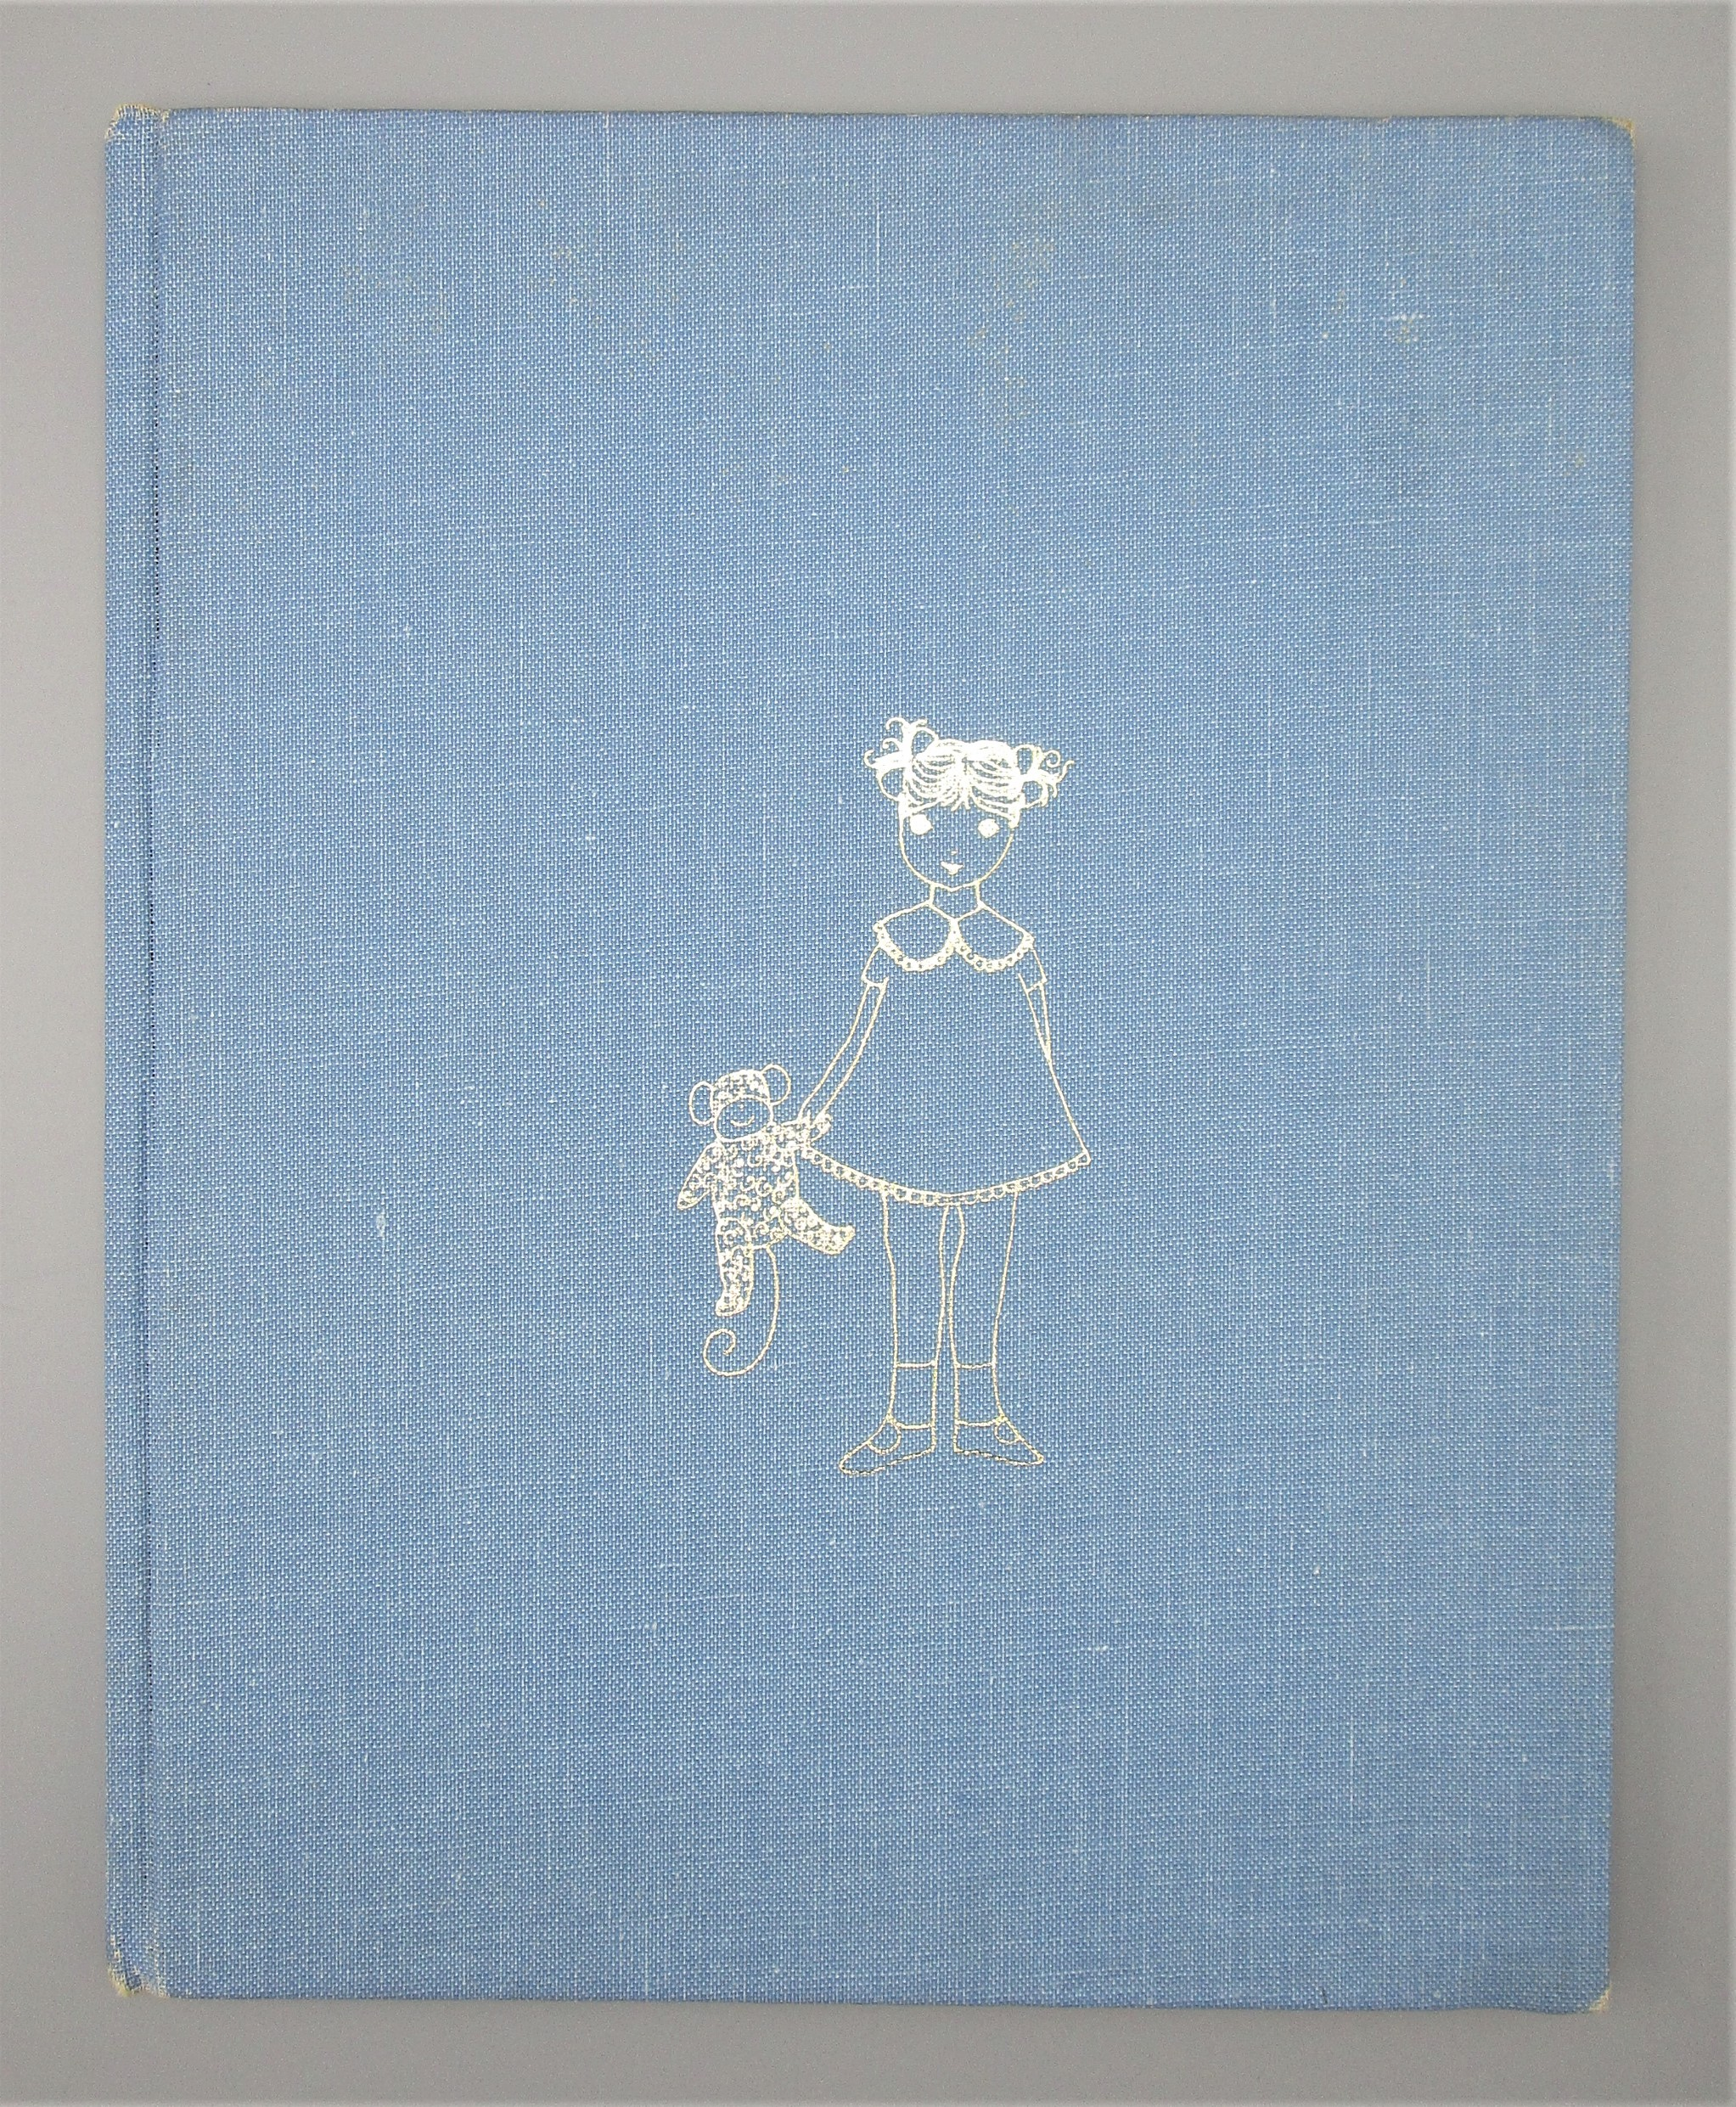 LAURA JANE SEES EVERYTHING AT HESS'S, by Oscar Schisgall & Julie Maas - 1957 [1st Ed]